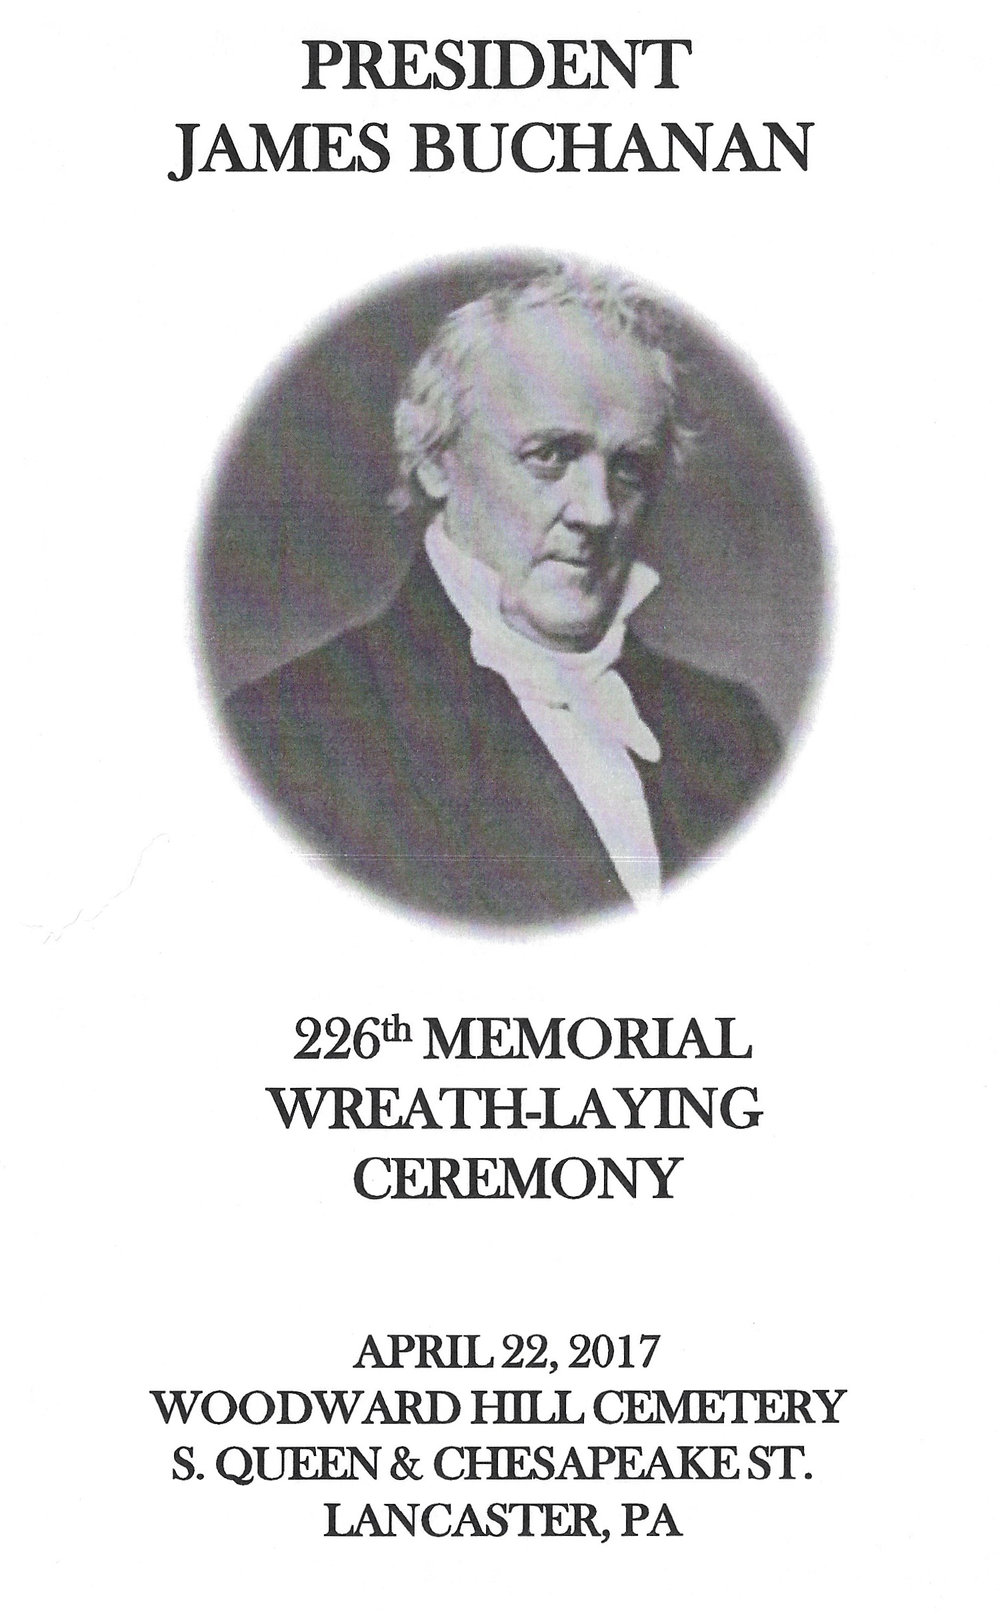 170422 Buchanan wreath laying ceremony program cover page.jpg